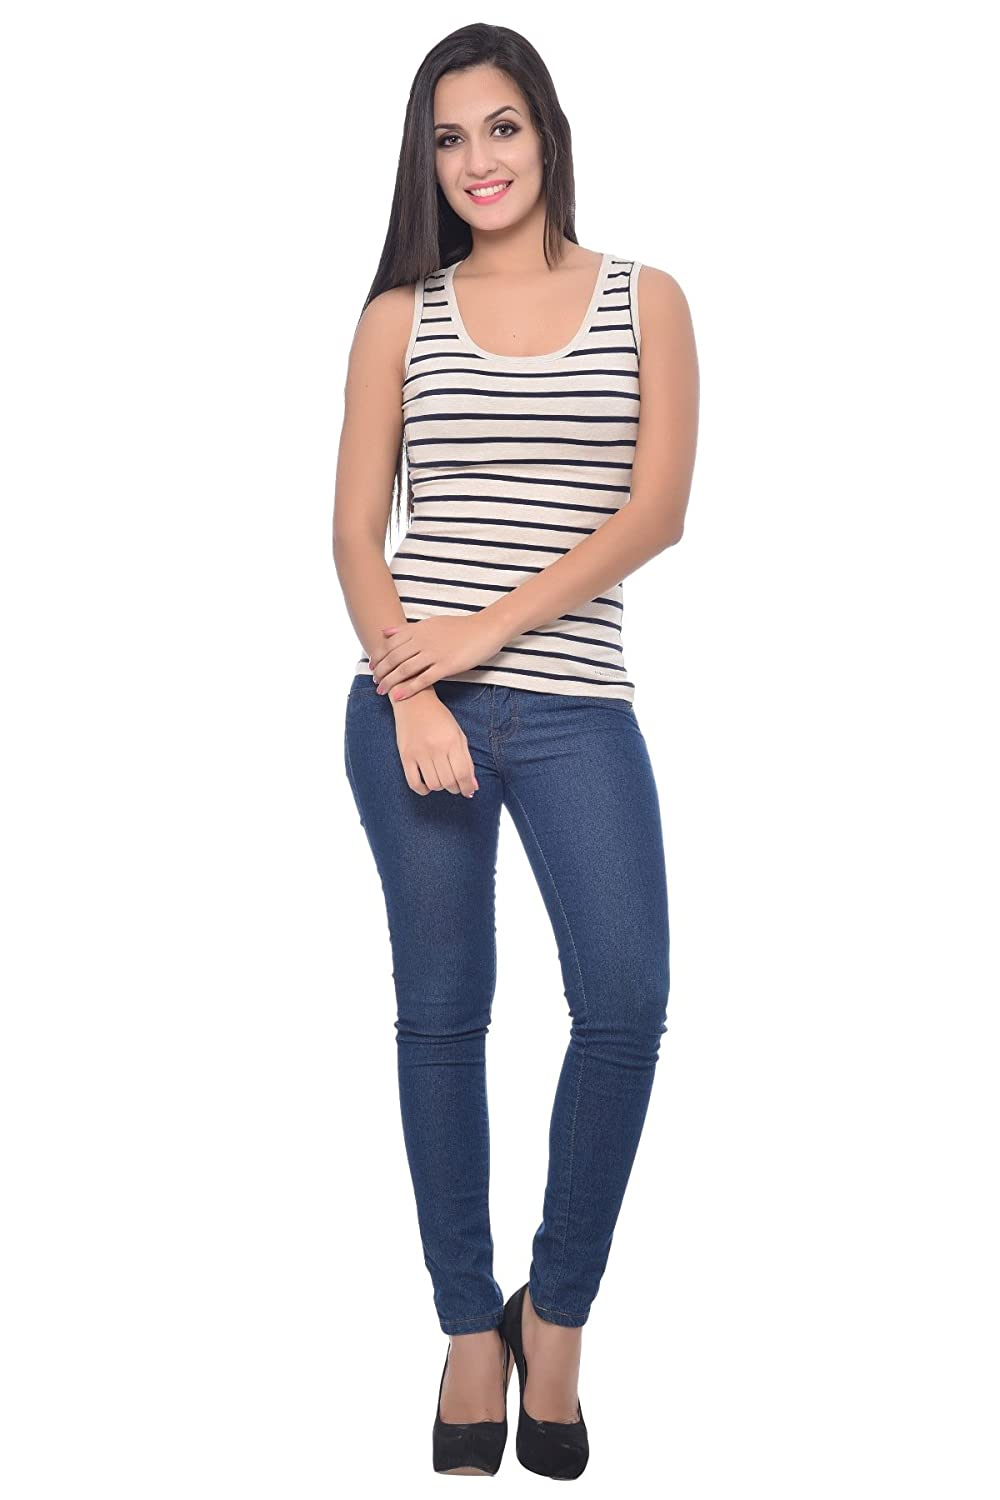 81146dc7d6 Frenchtrendz Women Cotton Spandex Medium Tank Top: Amazon.in: Clothing &  Accessories